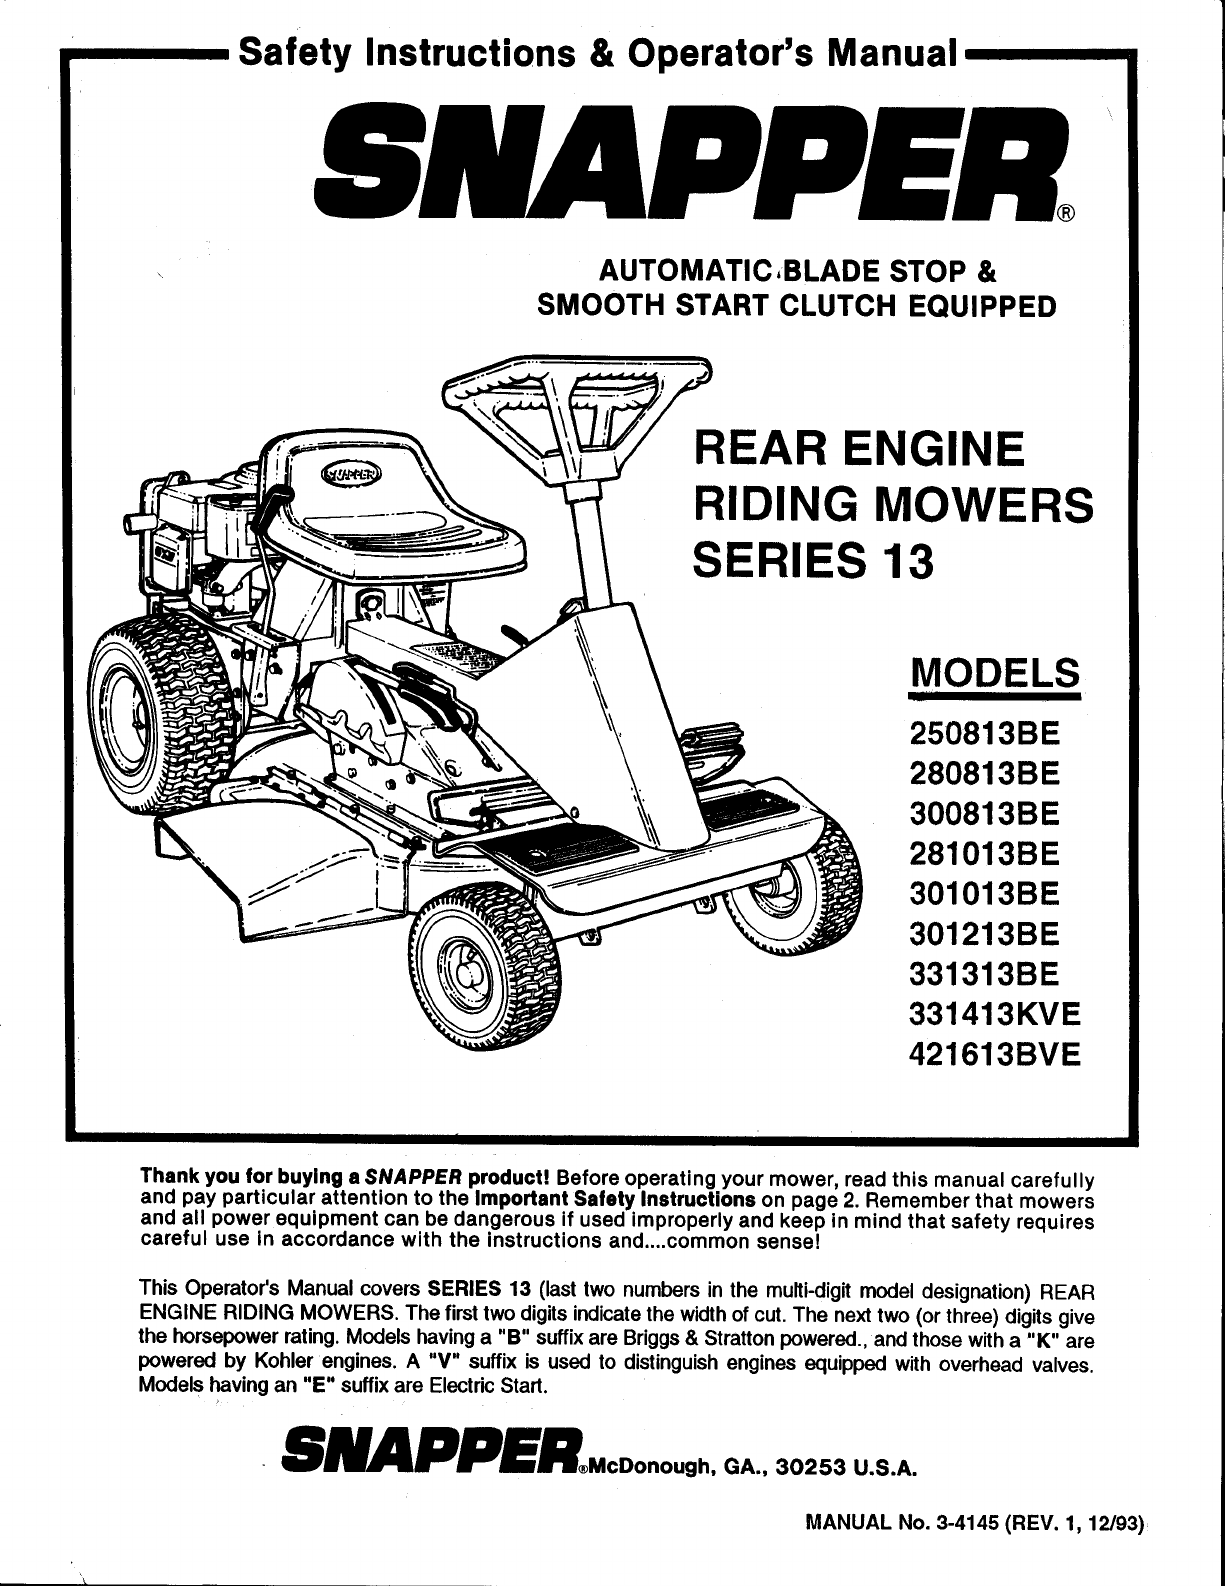 301213be 1 on snapper repair manuals online